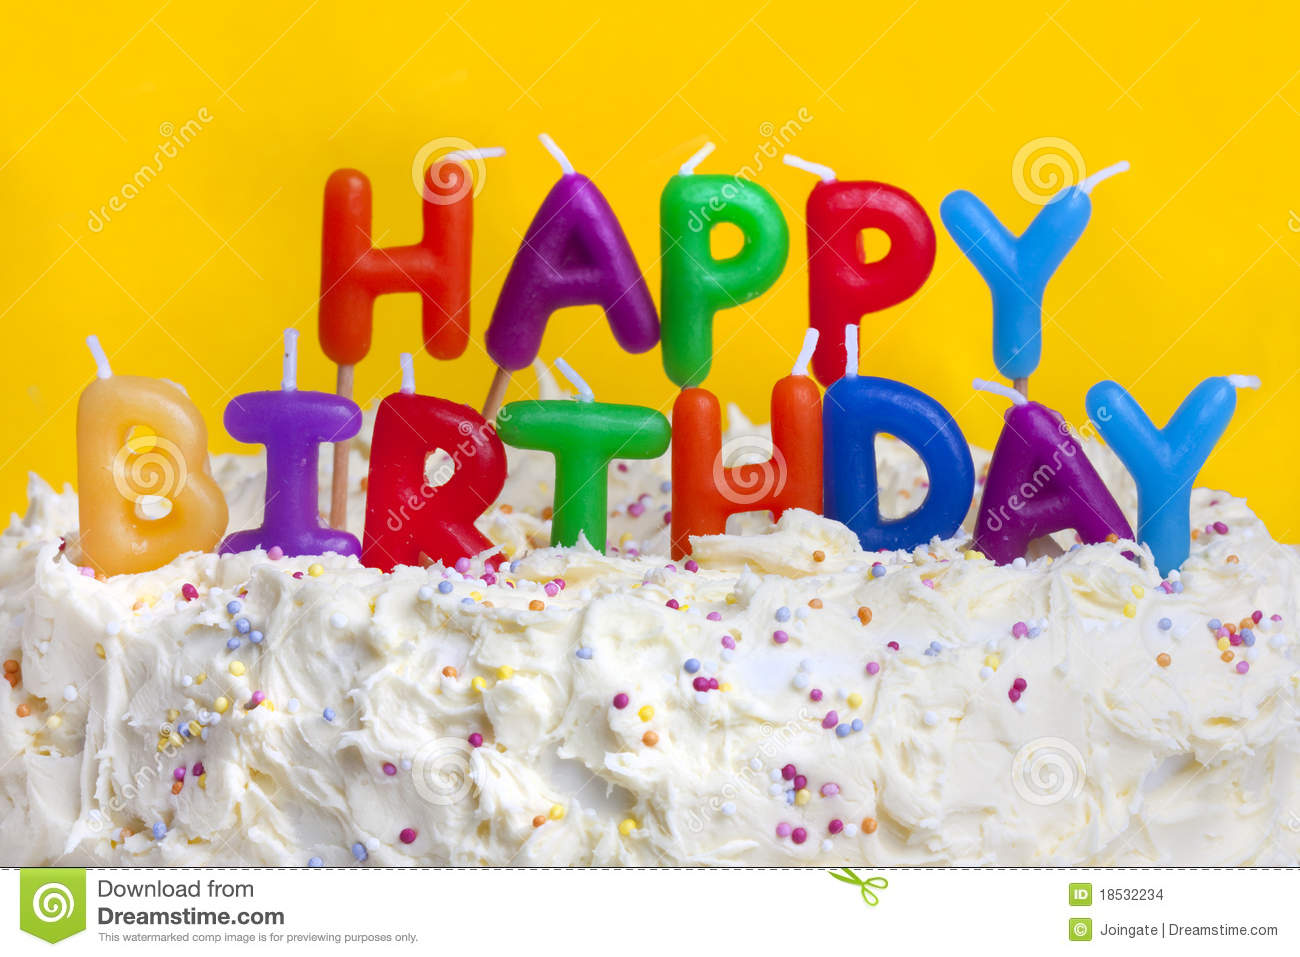 birthday message with cake picture ; happy-birthday-cake-message-18532234